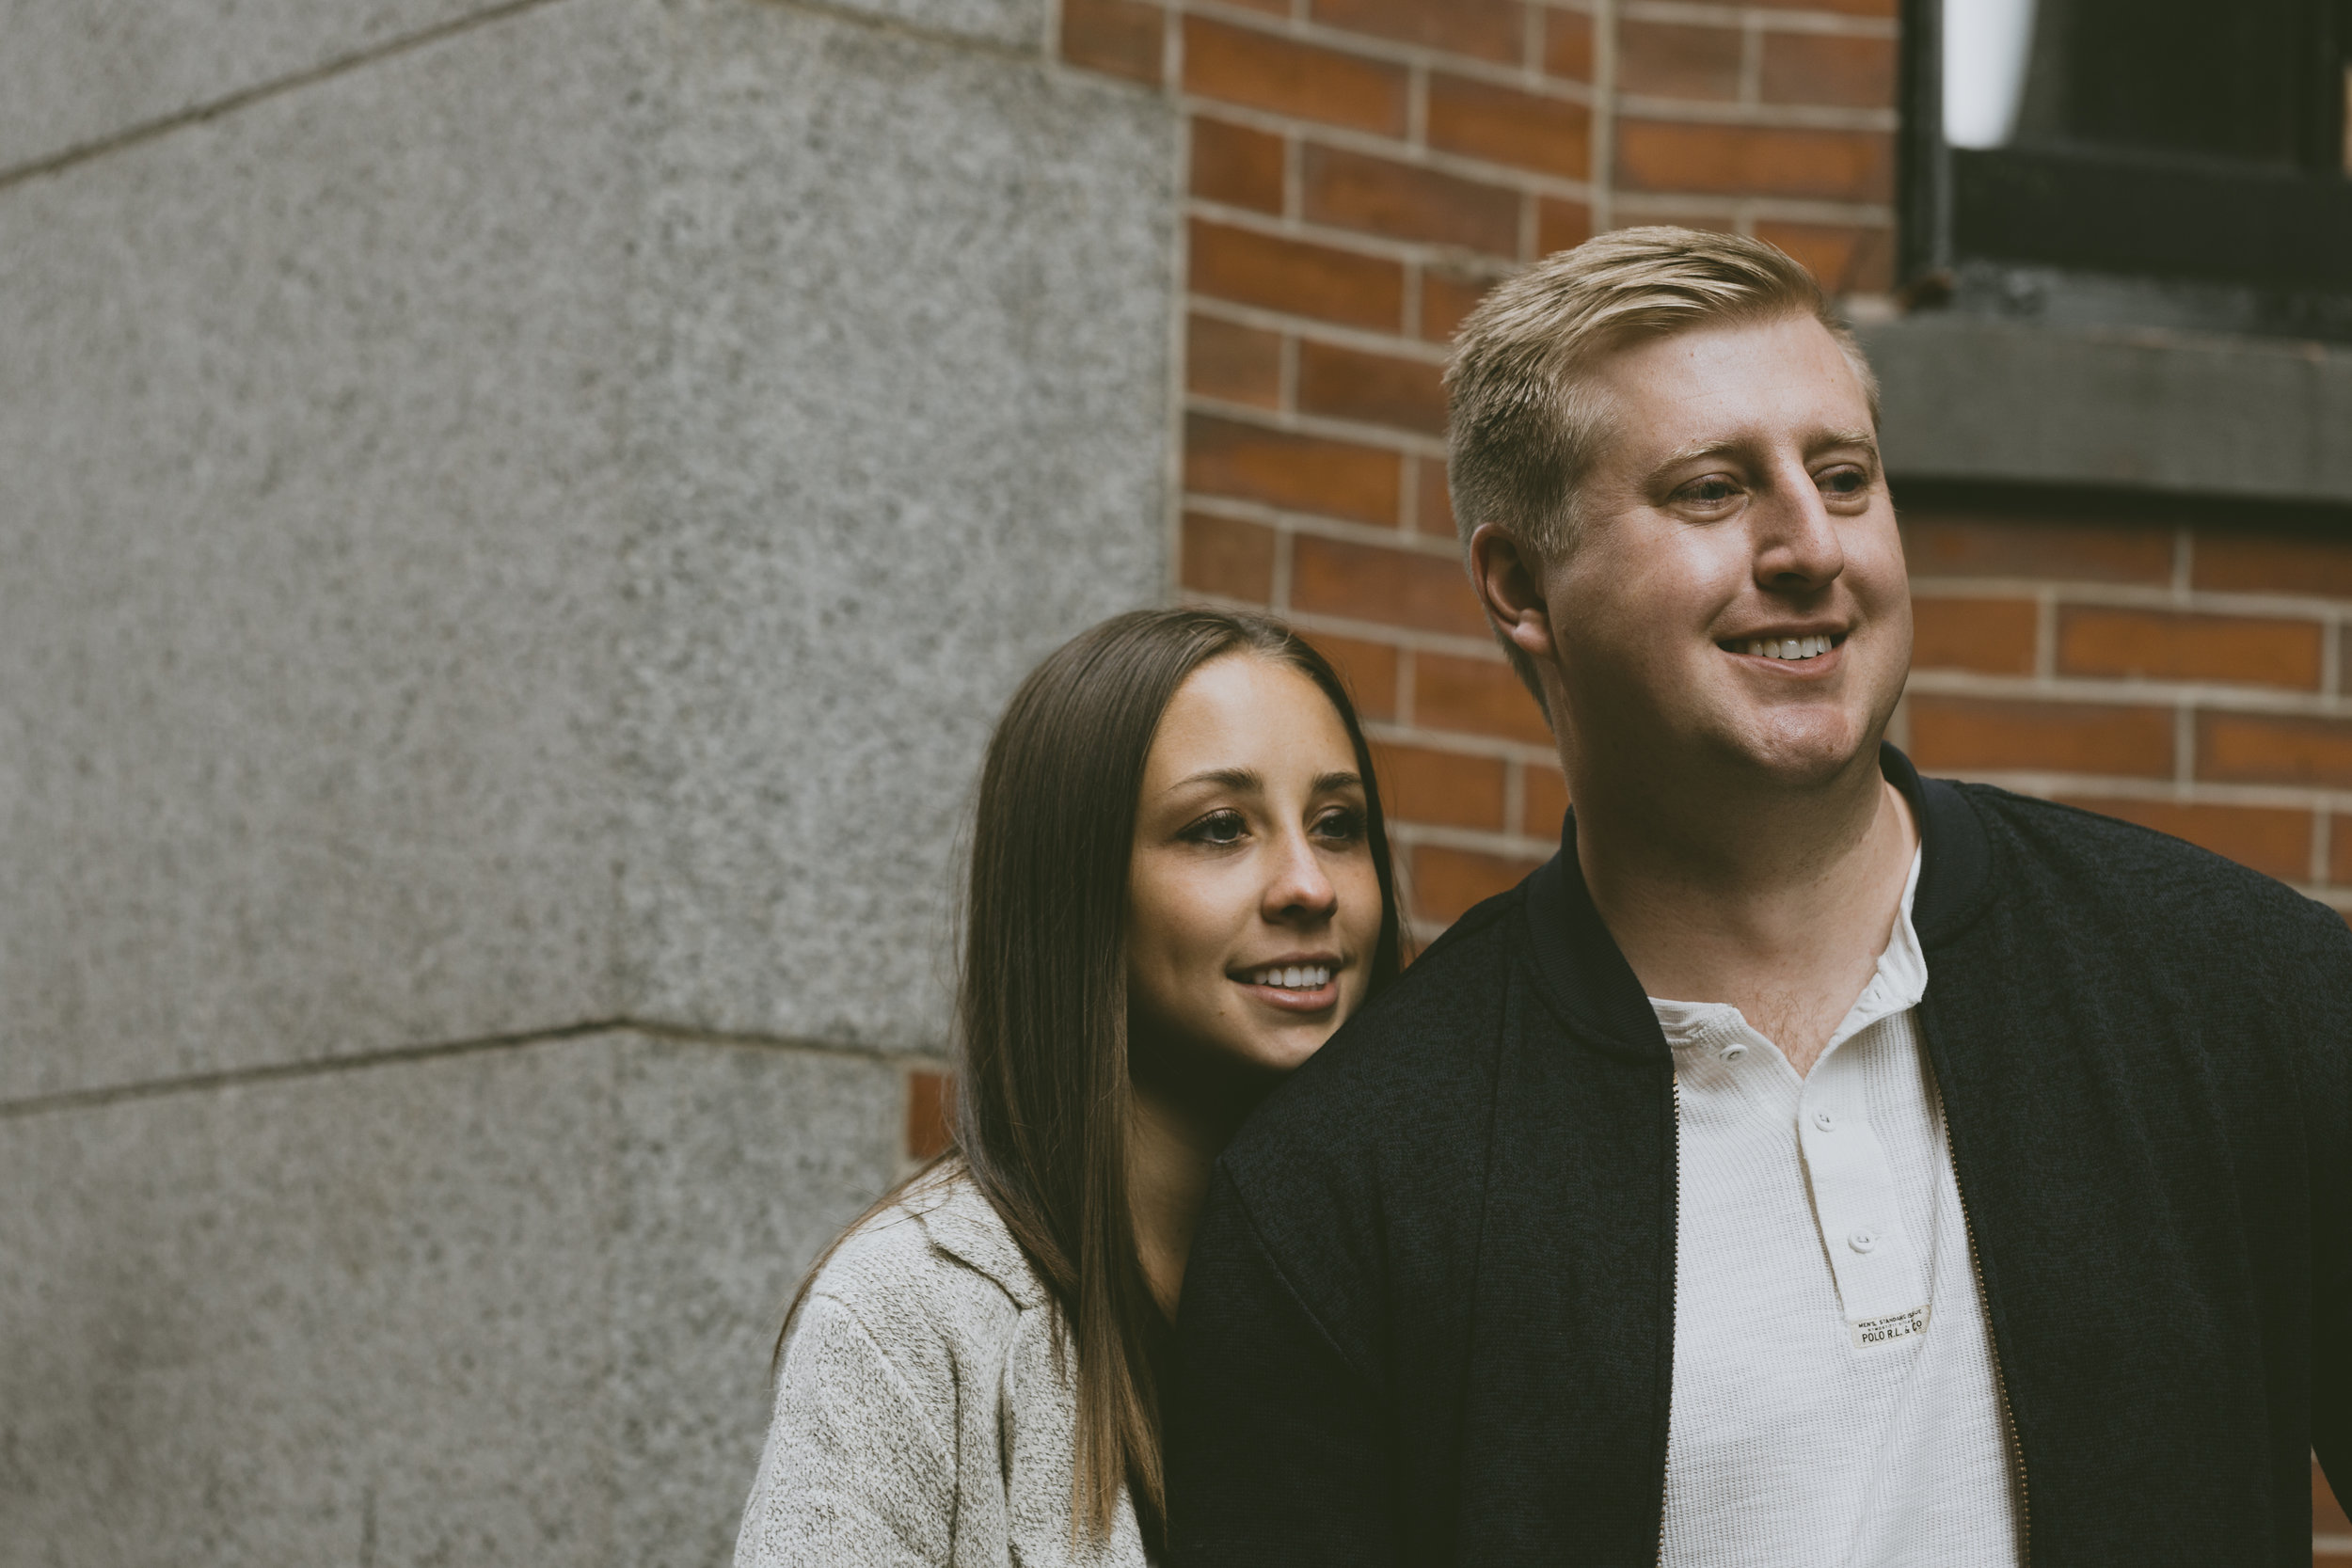 R+G Couples Session on Acorn Street